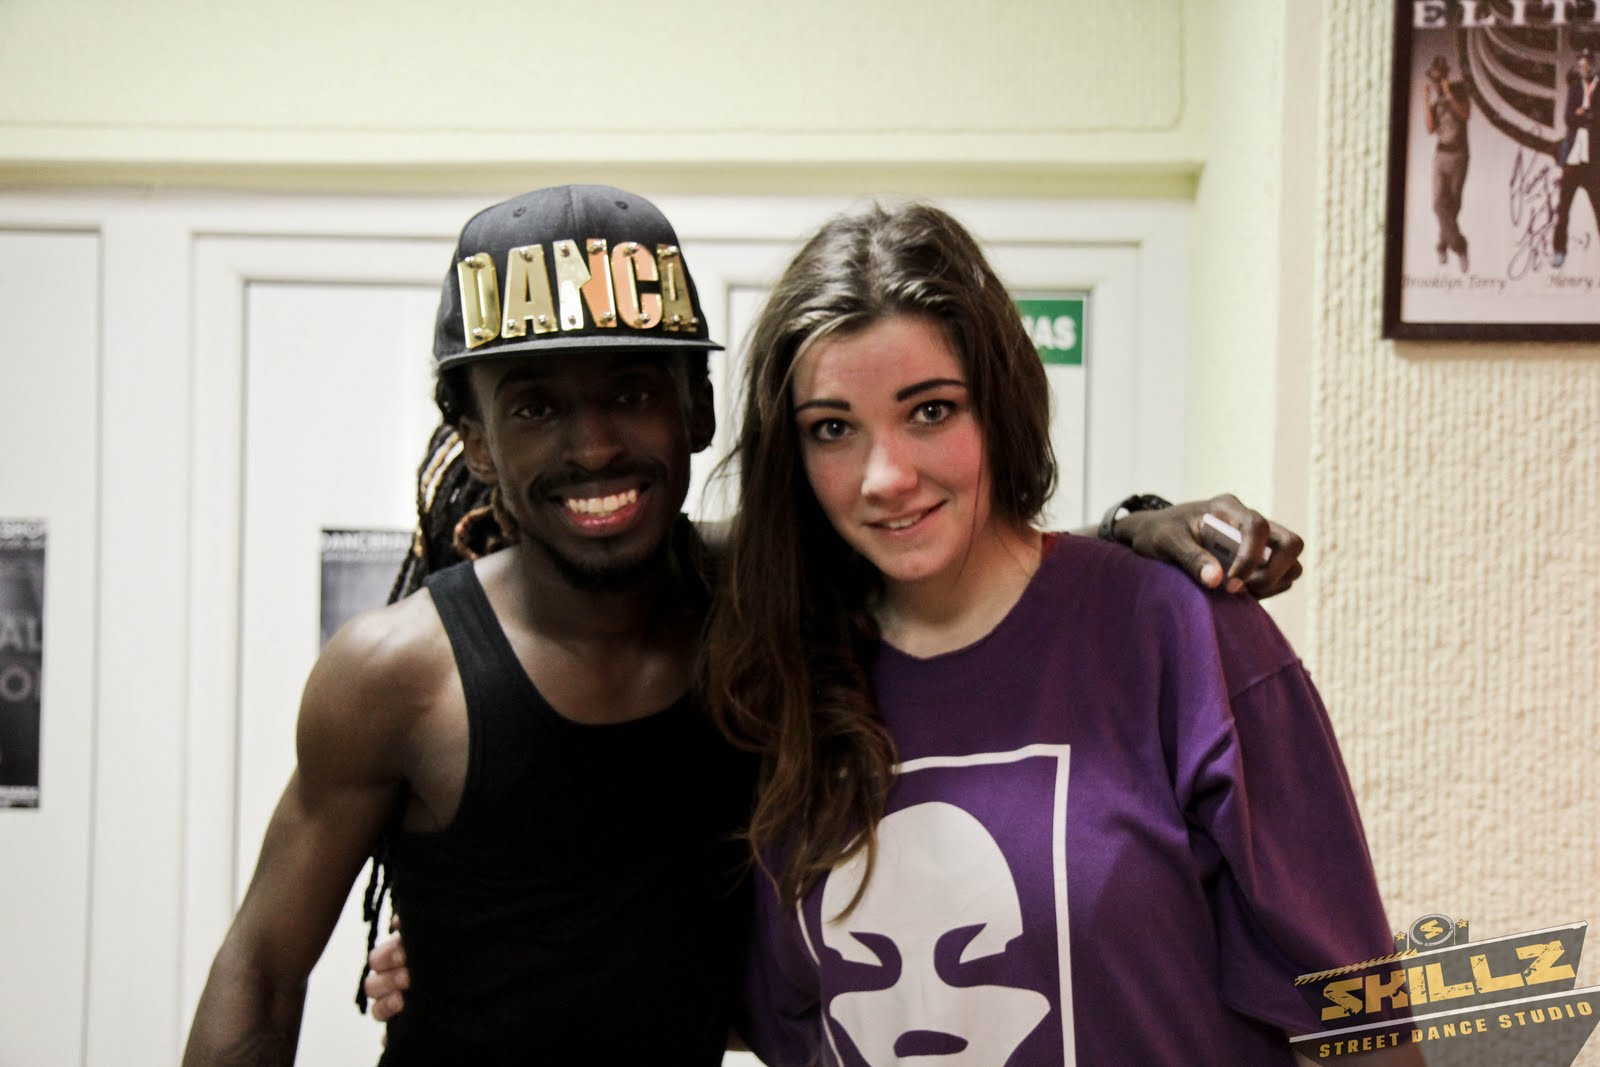 Dancehall workshop with Black Di Danca (USA, New Y - IMG_6762.jpg